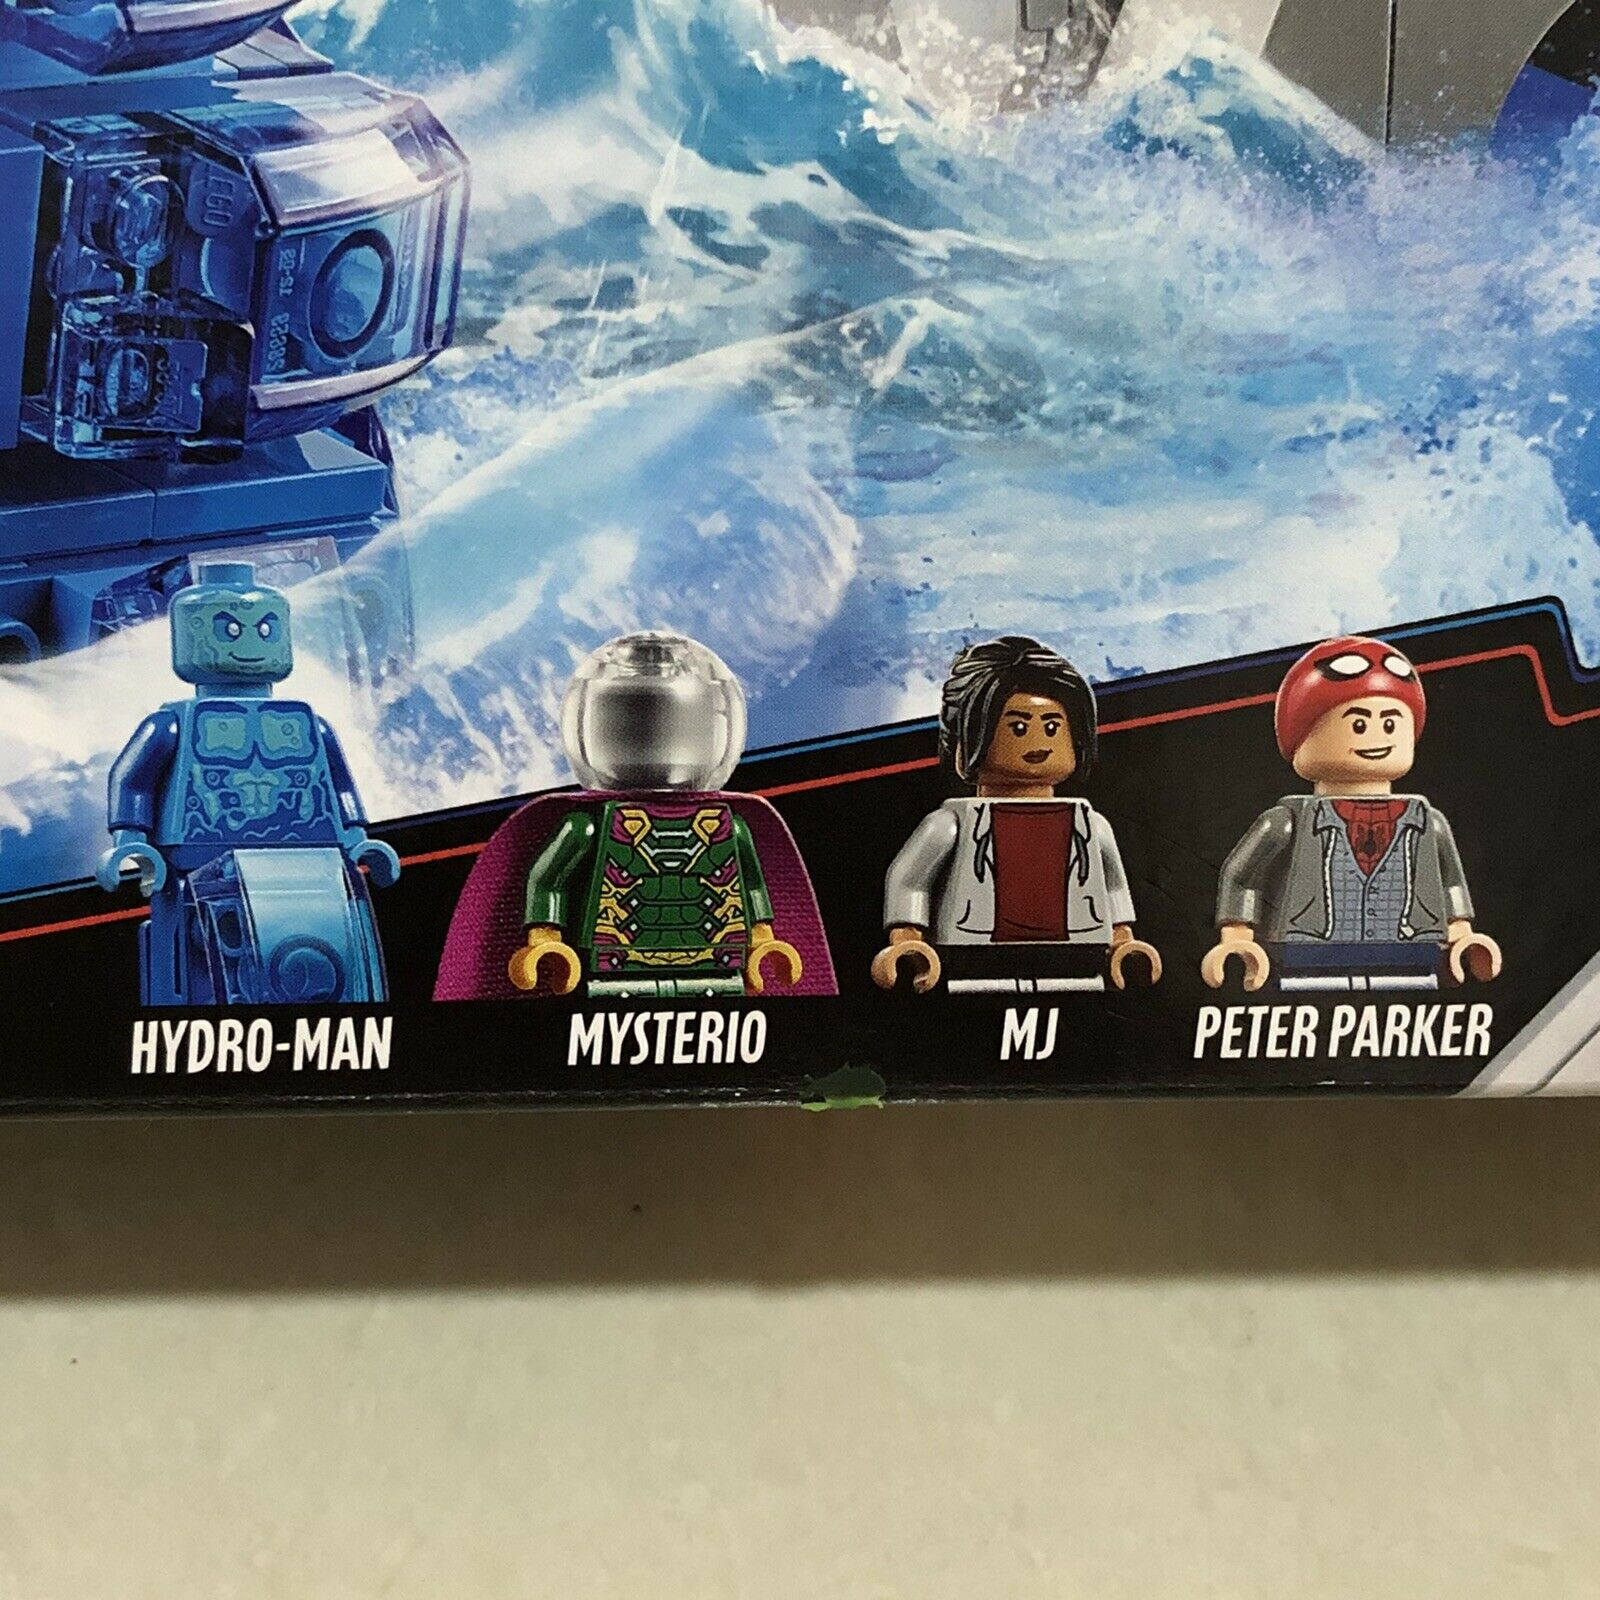 LEGO 76129 Spider-Man Far From Home Hydro-Man Minifigure NEW